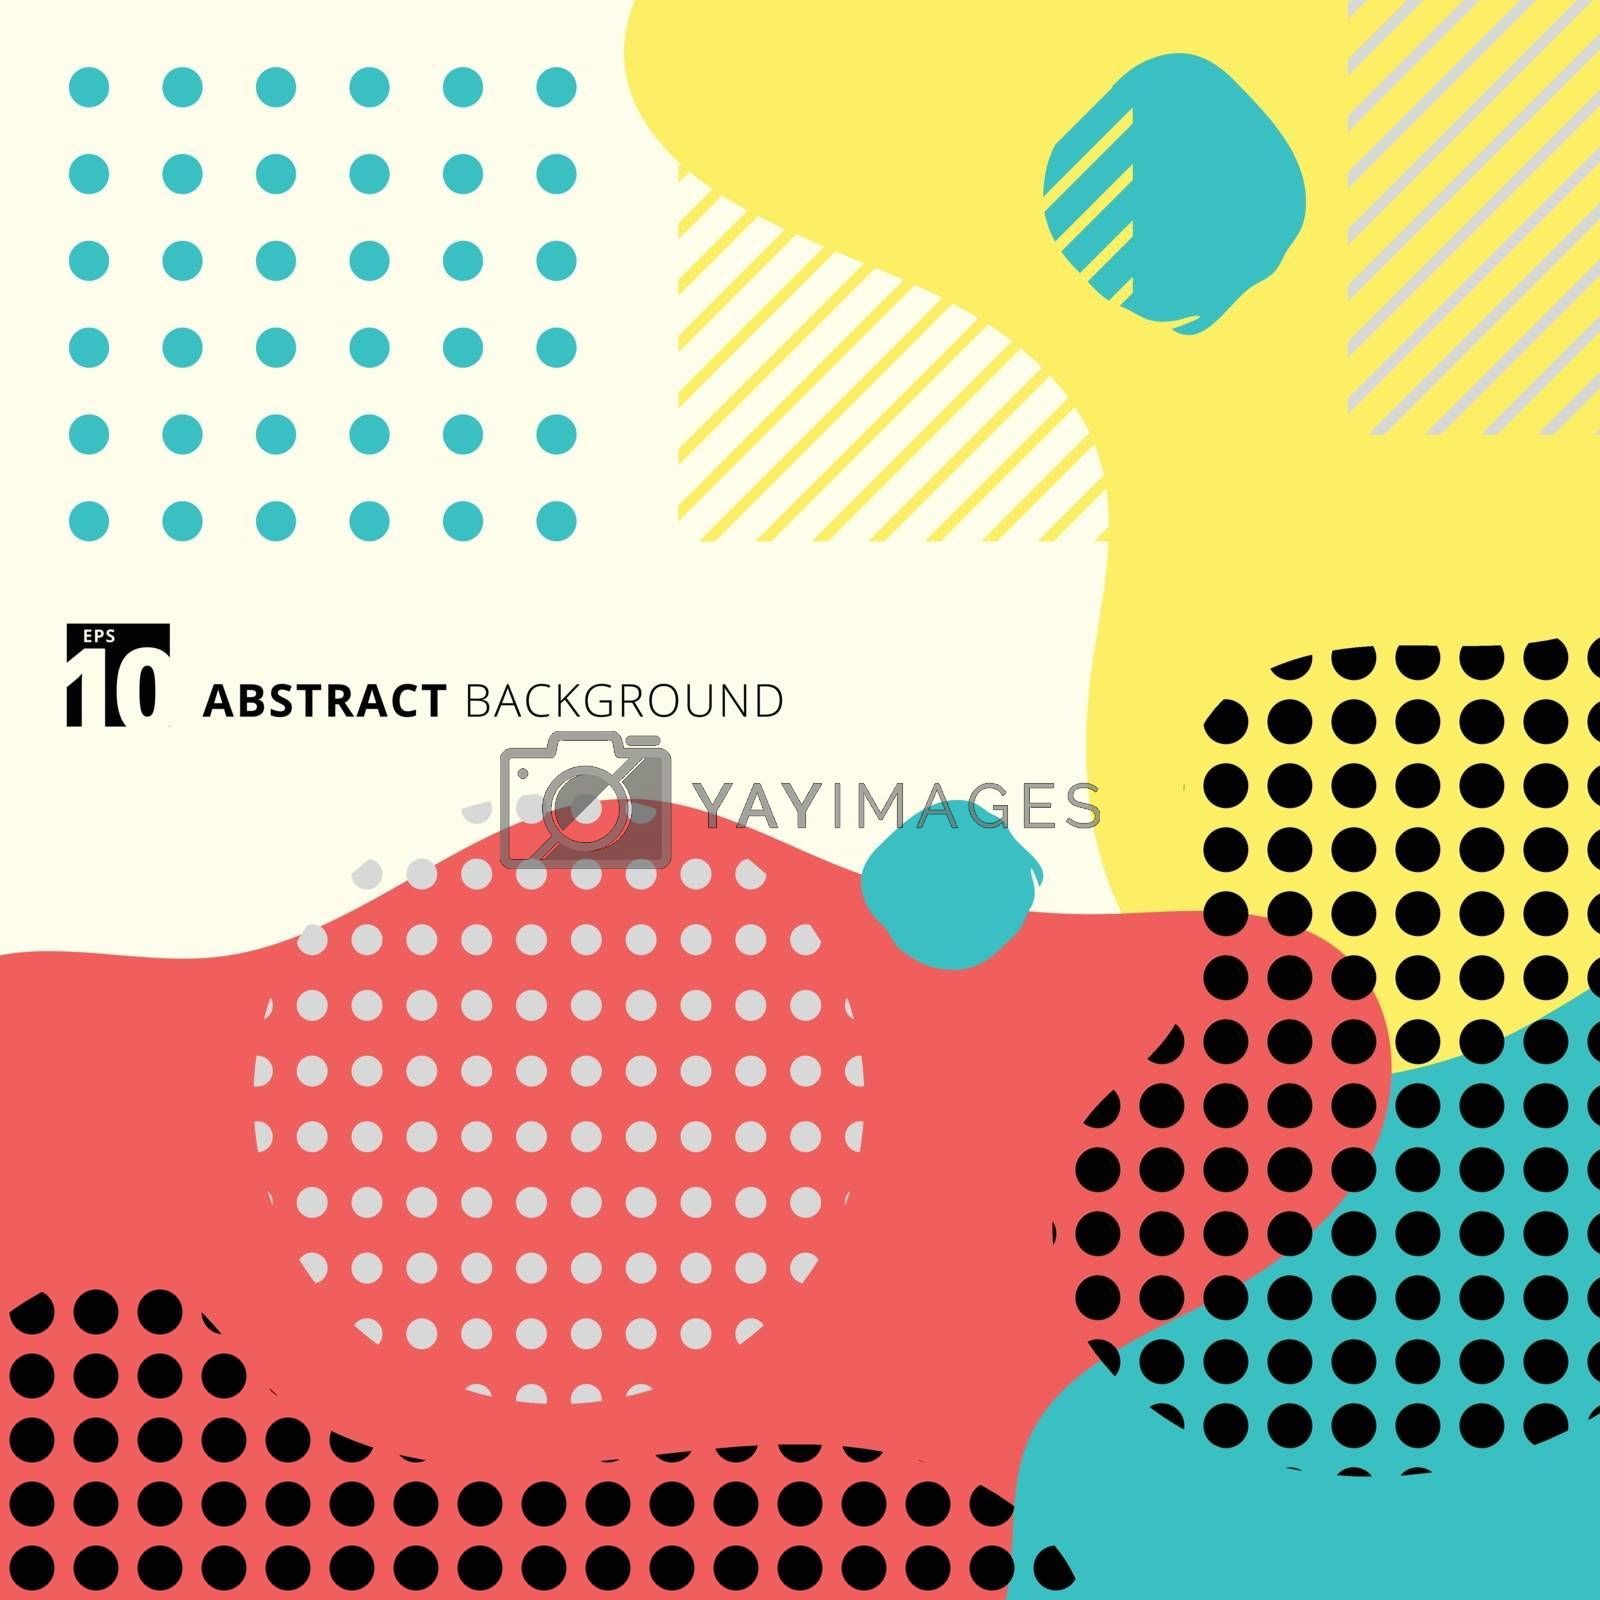 Abstract geometric form with line and dots pattern trendy memphis style on colorful background. Vector illustration